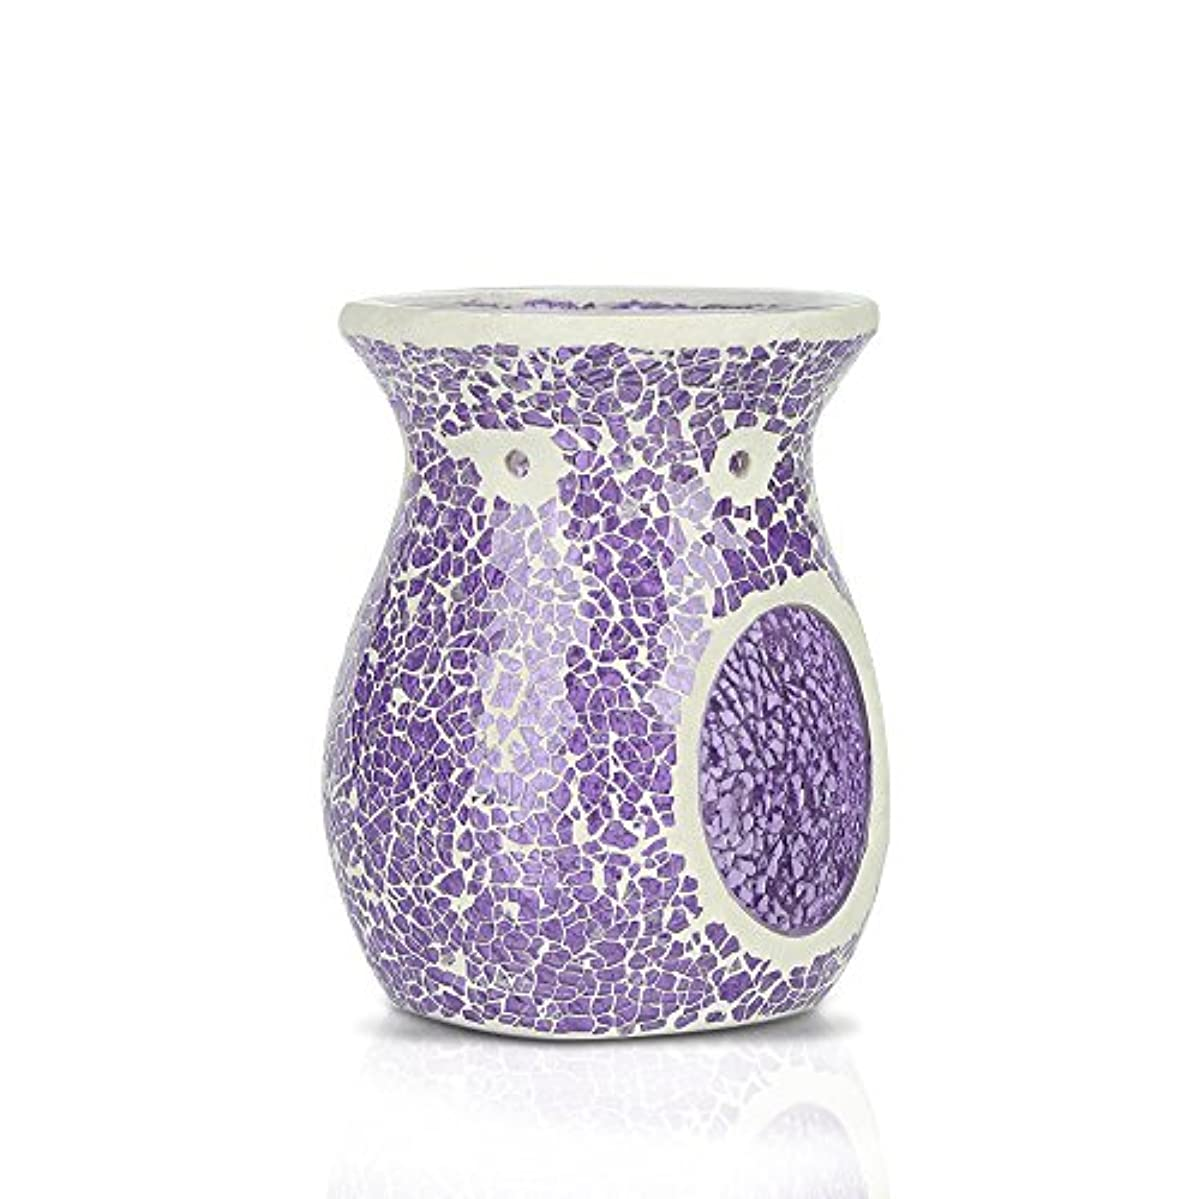 モザイクオイルバーナー/ Essential Oil Burner / TealightsモザイクワックスMelt / Aromatherapy Essential Oil Burner / Hollow Flower...